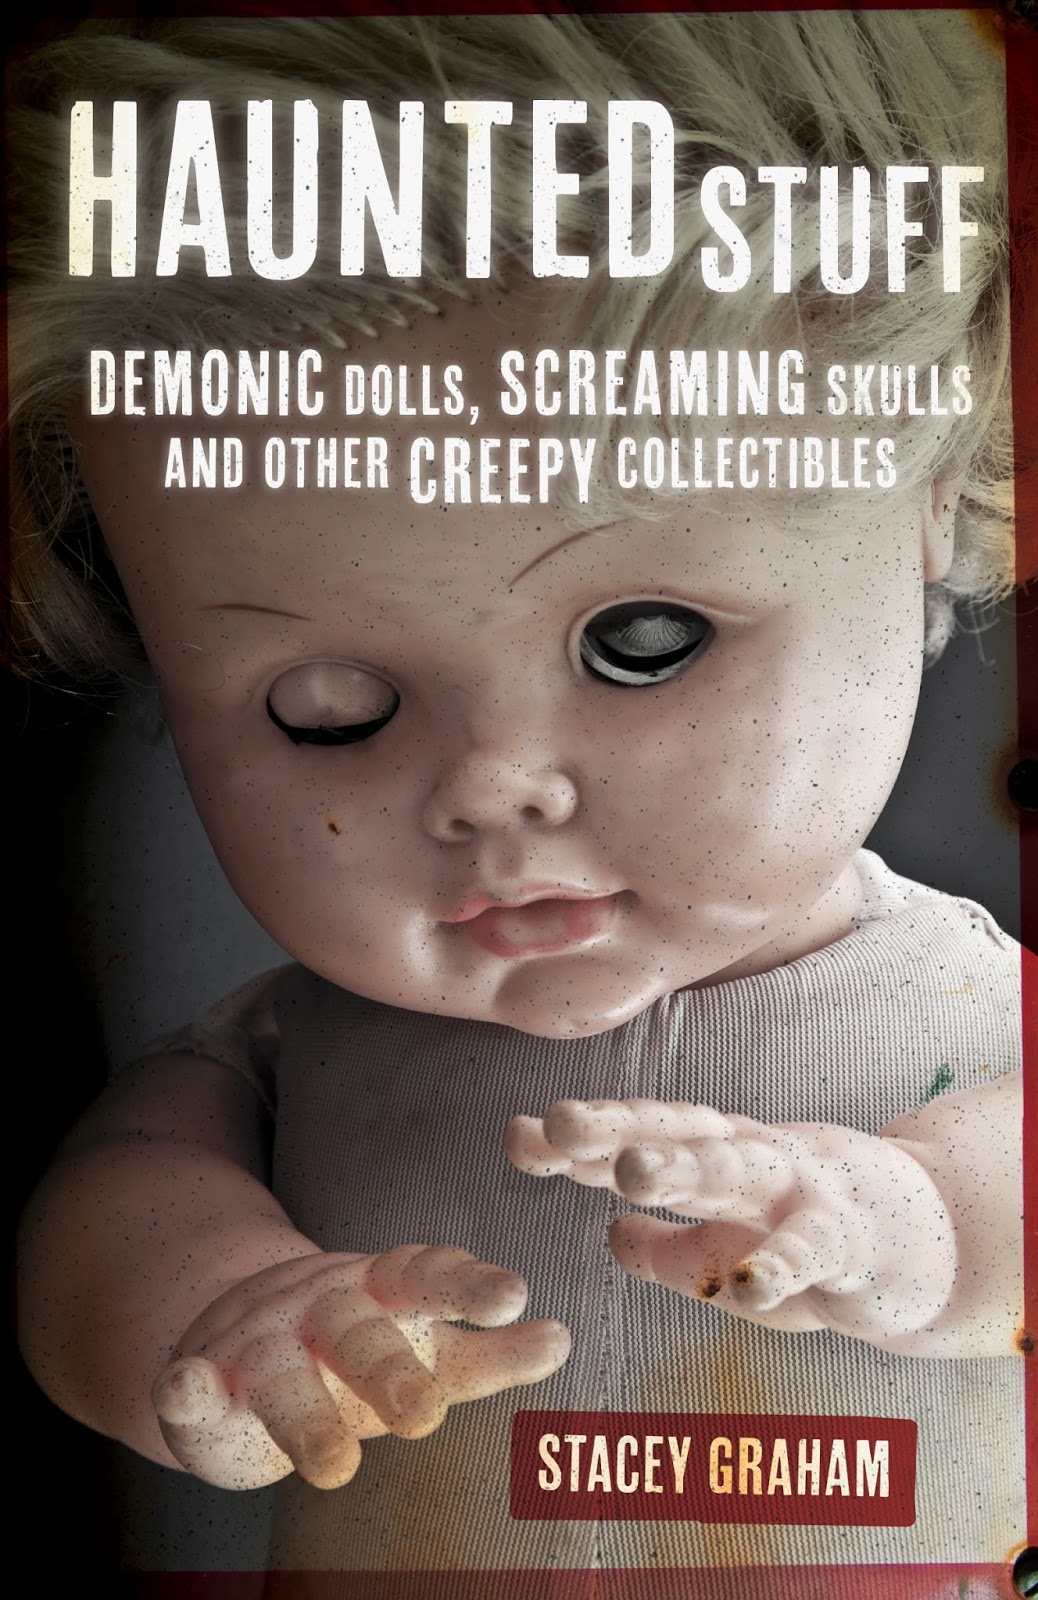 Haunted Stuff: Demonic Dolls, Screaming Skulls & Other Creepy Collectibles Book Cover